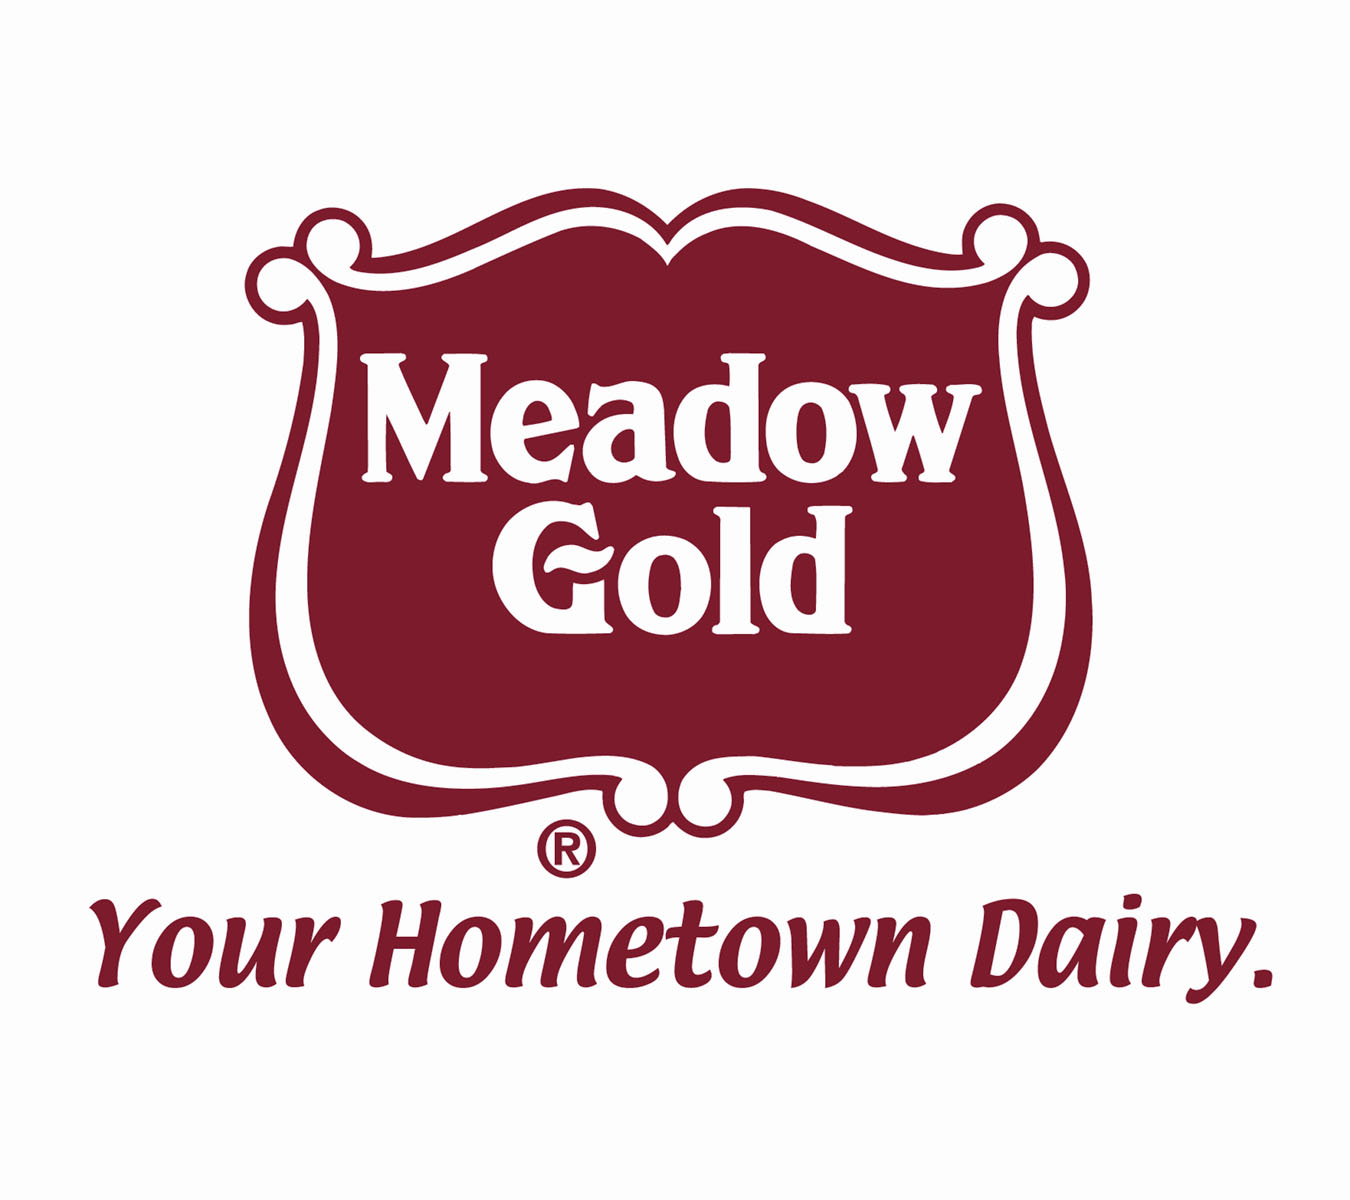 Meadow Gold Dairies, Inc.